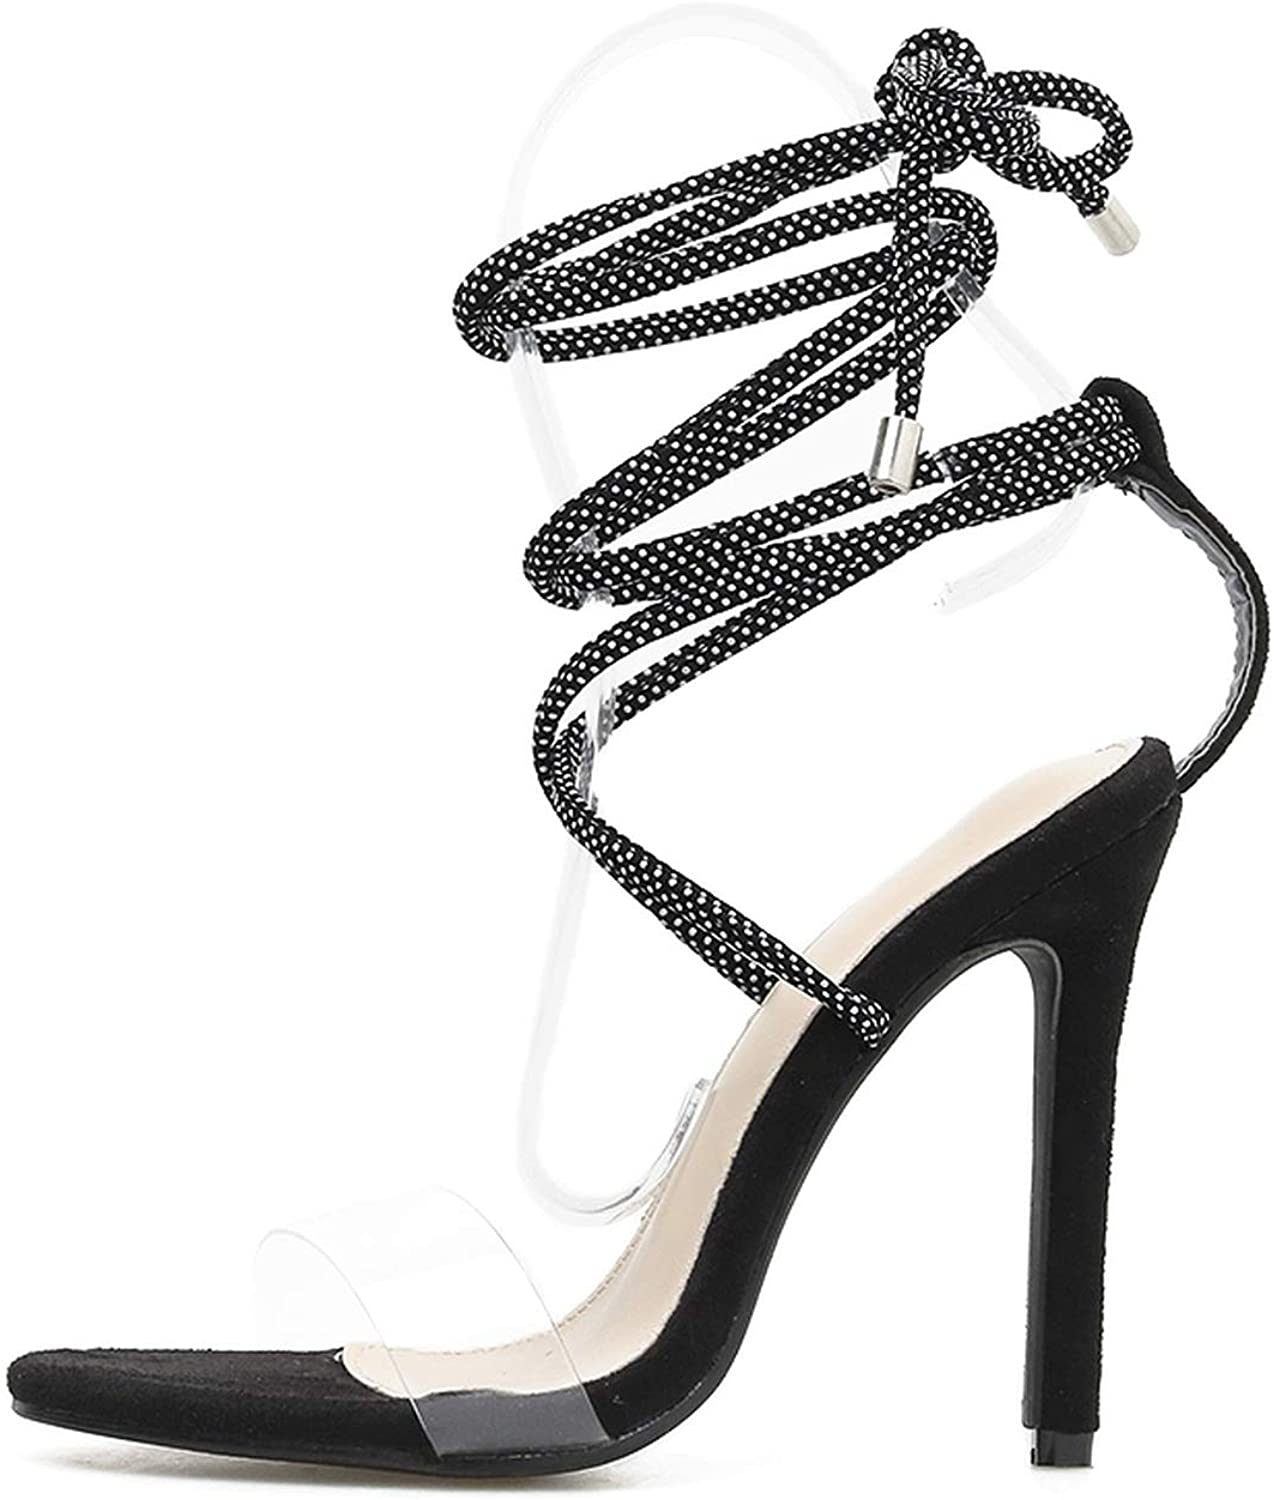 Gladiator Sandals Summer PVC Open Toe High Heels Cross Strap Crystal Ankle Strap shoes